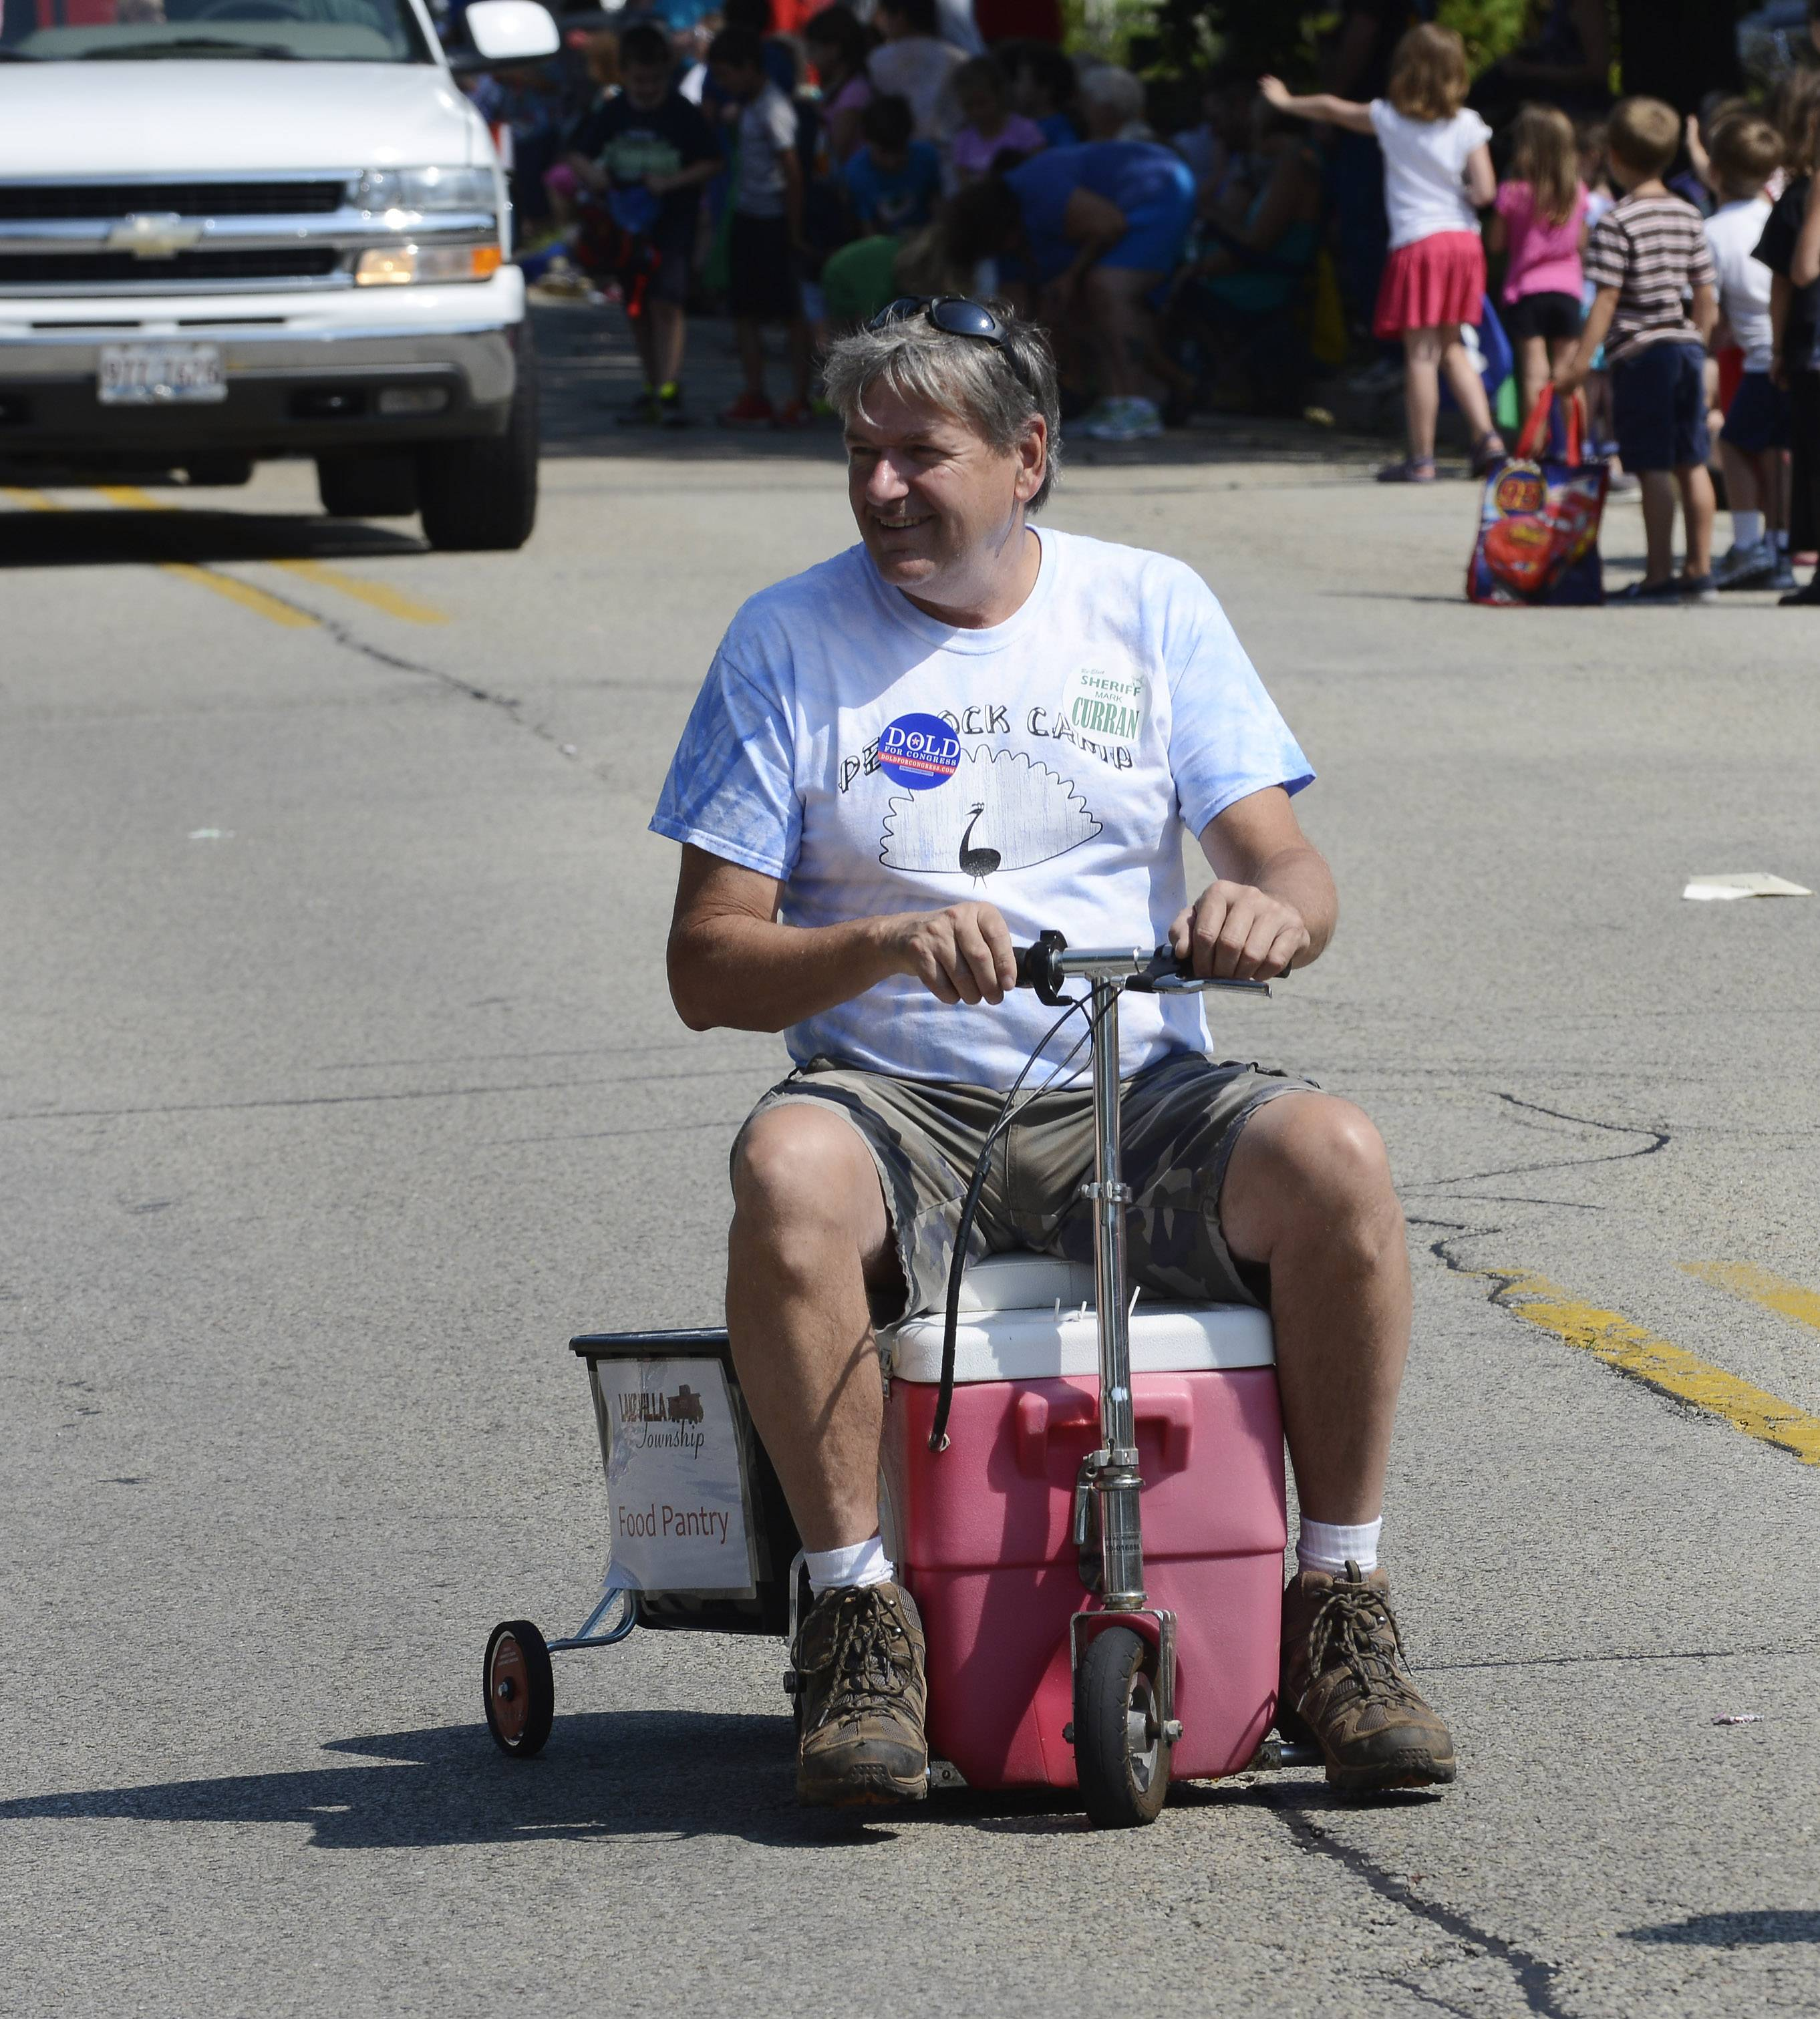 Lake Villa Township Supervisor Dan Venturi rides a self-propelled cooler while soliciting donations for the township food pantry Saturday during the Lindenfest Parade in Lindenhurst.